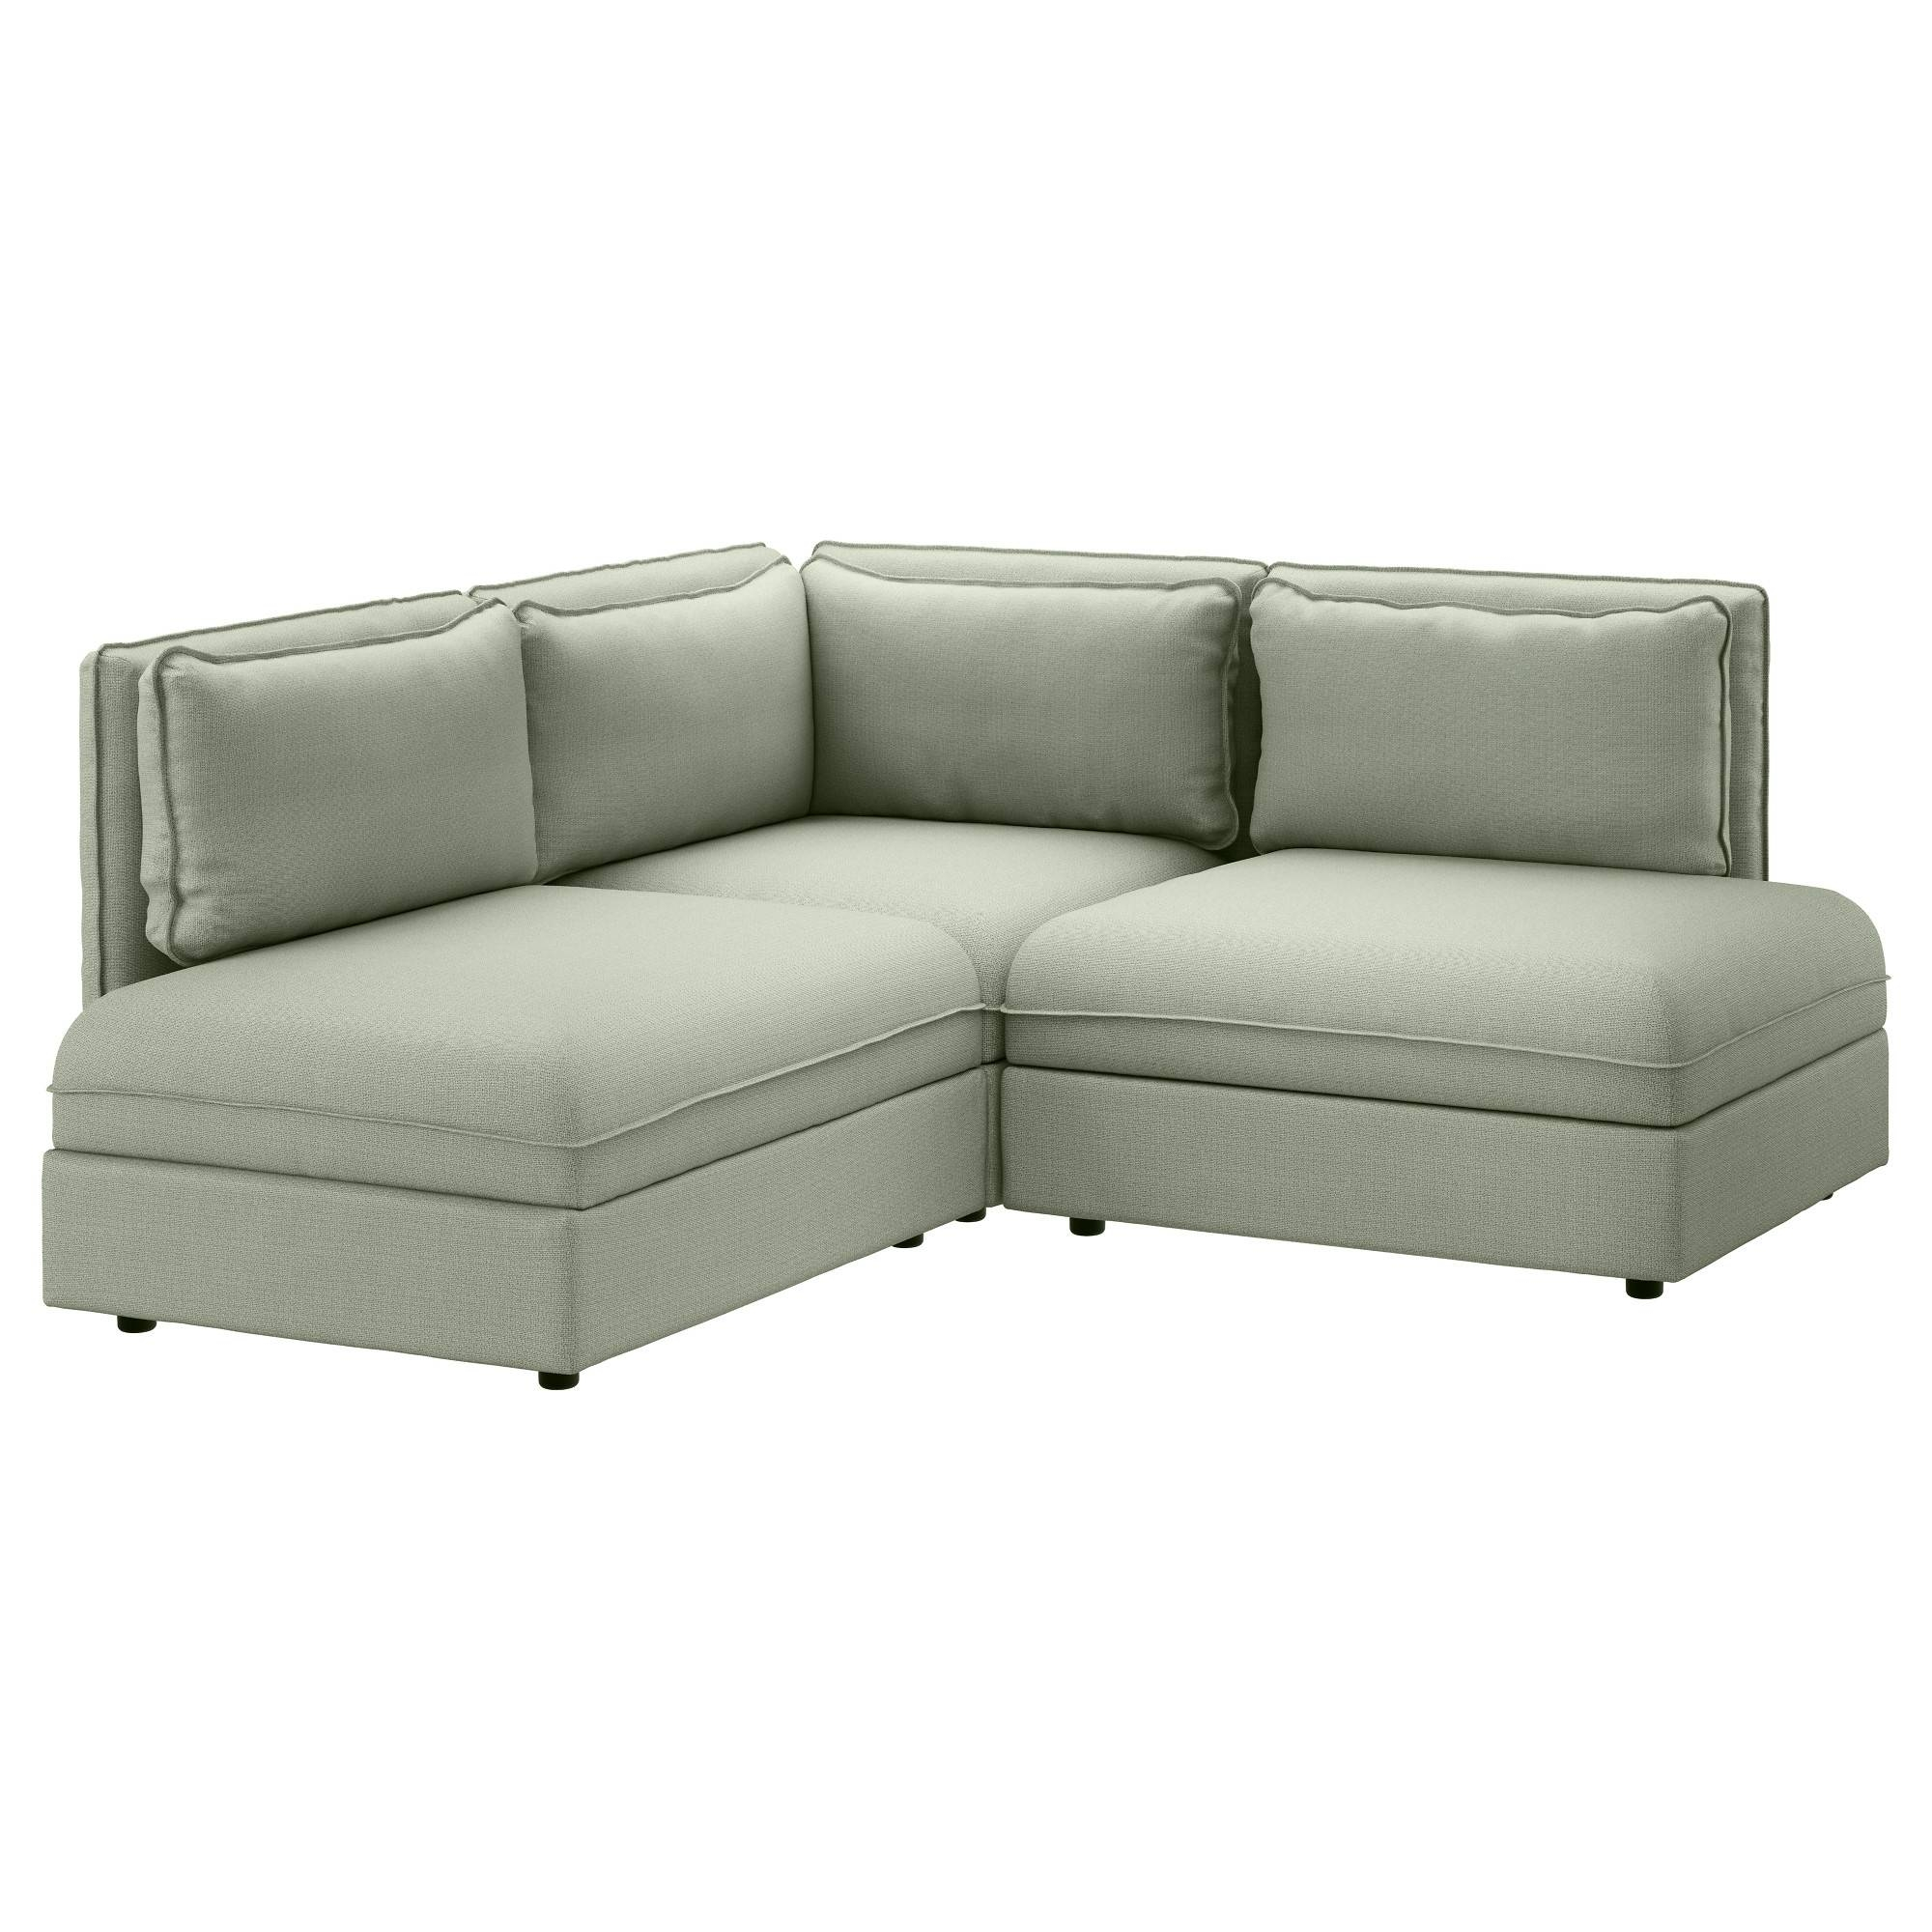 Ikea Modular Sofa Sectional Sofas Couches Ikea Decor Inspiration #484 throughout Small Modular Sofas (Image 7 of 25)